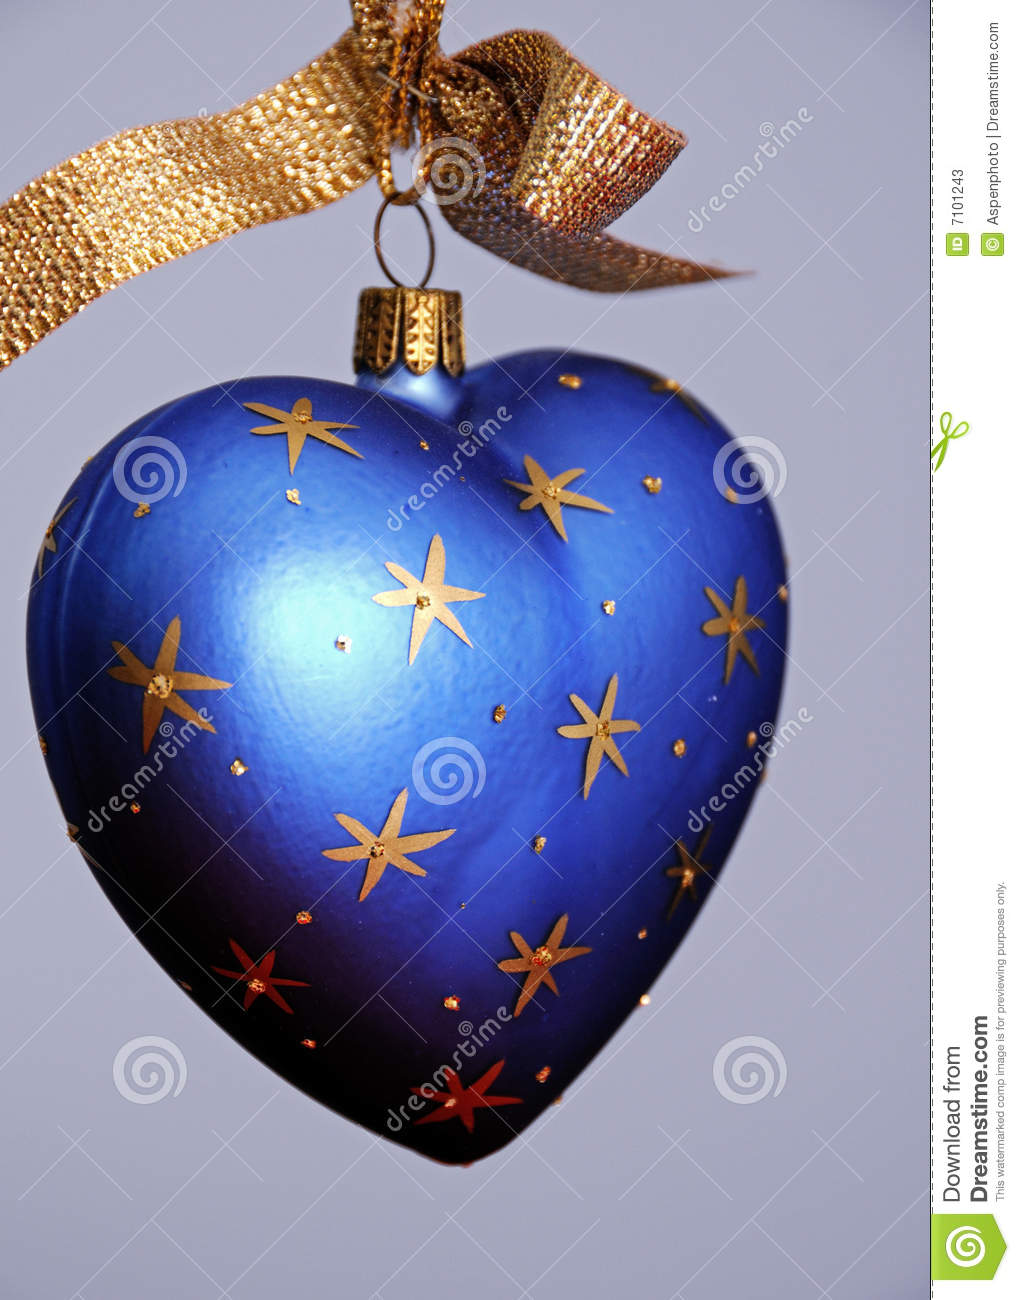 Blue Heart Shaped Christmas Tree Ornament Stock Image